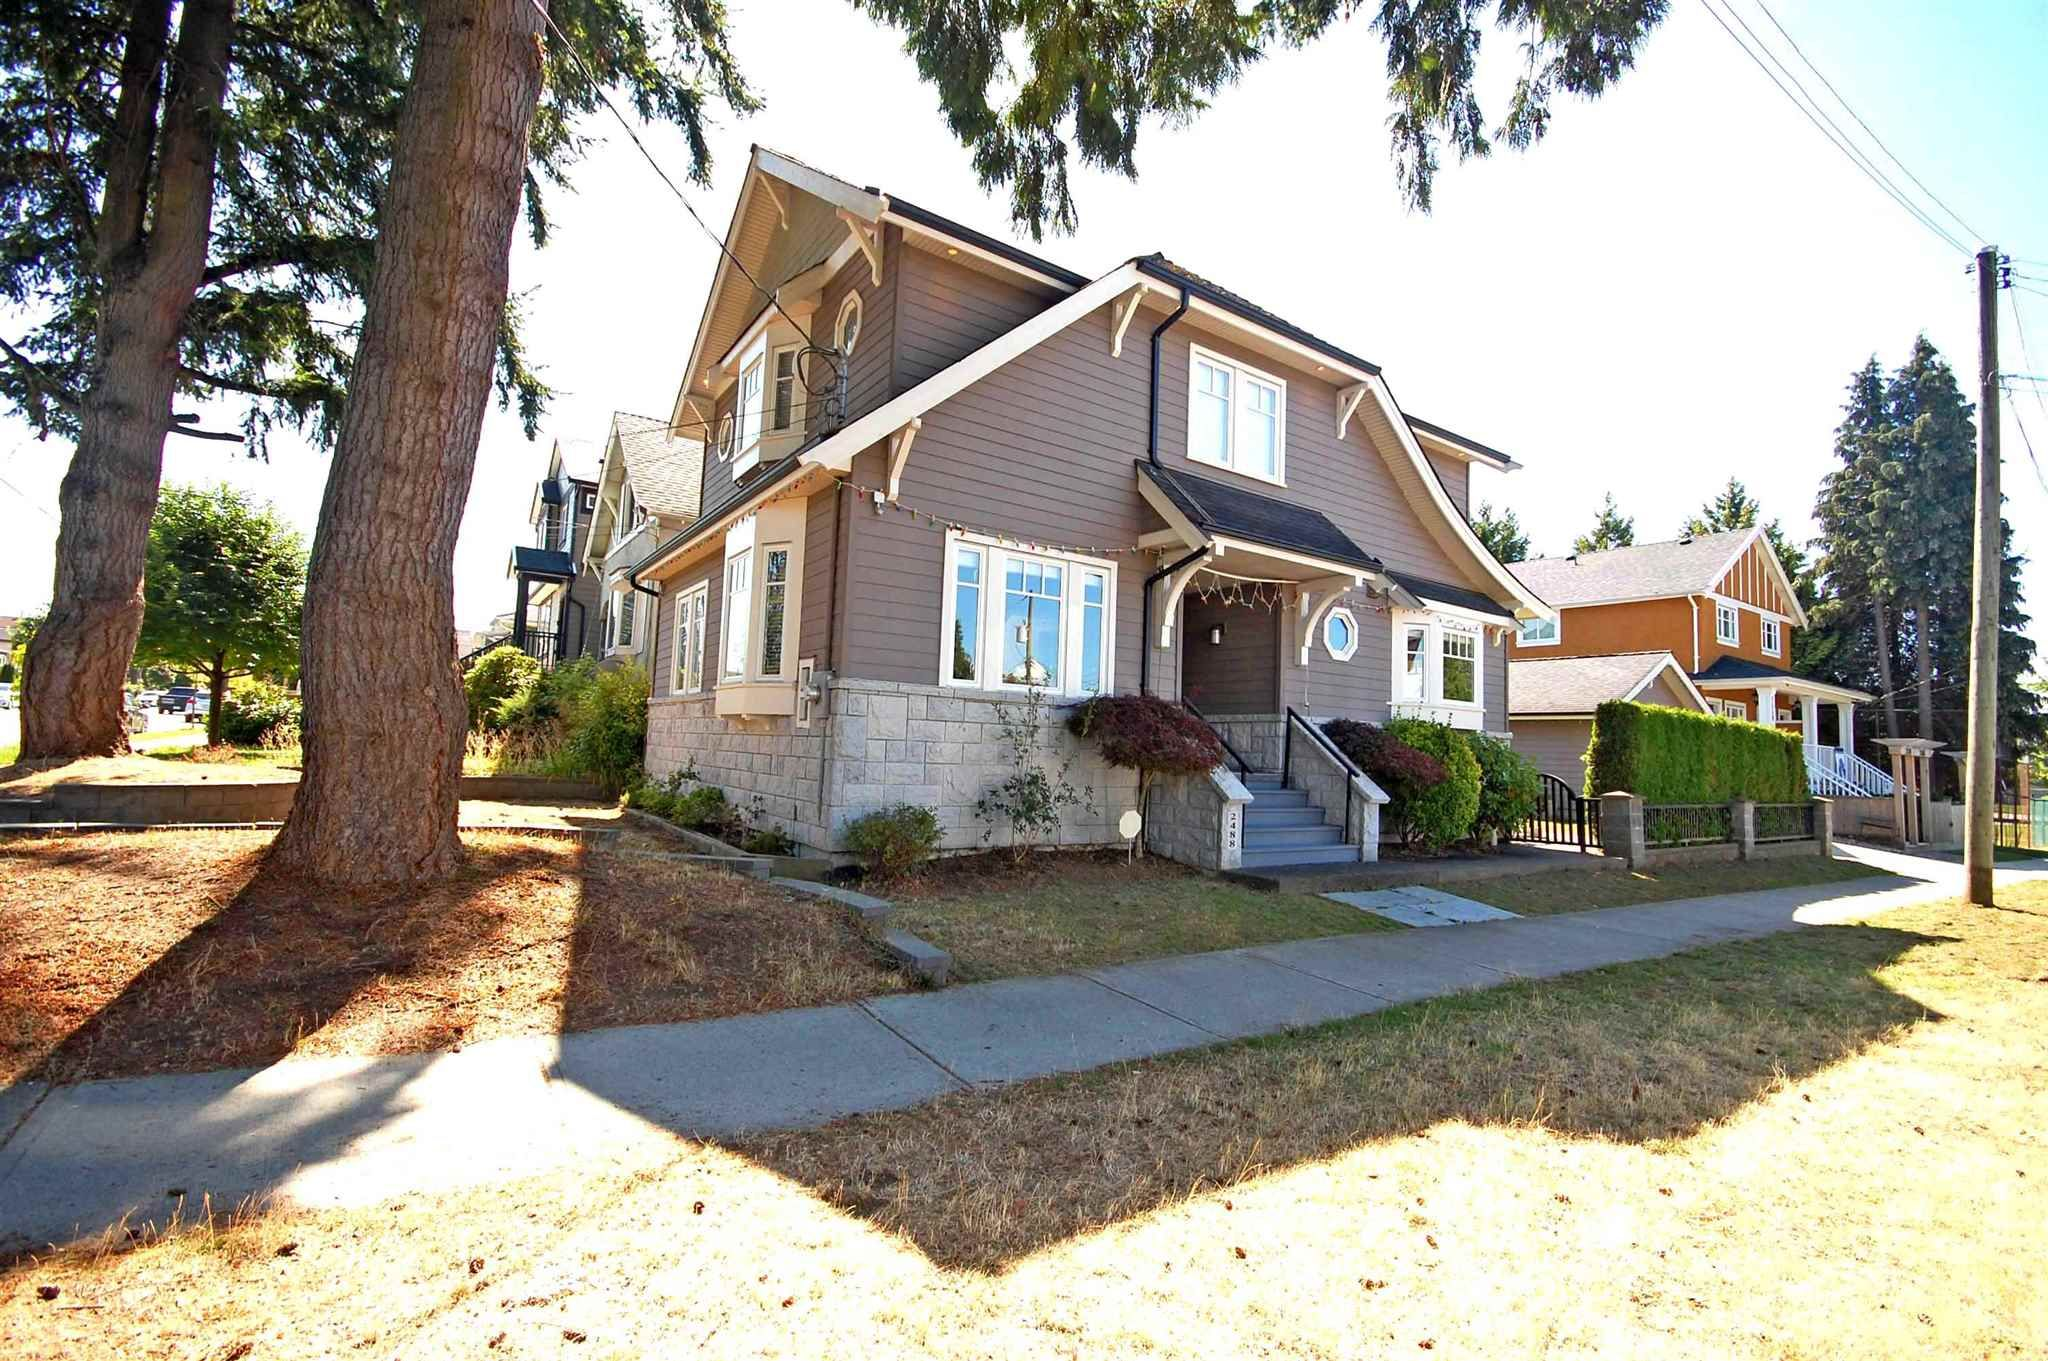 Main Photo: 2488 E 37TH Avenue in Vancouver: Collingwood VE House for sale (Vancouver East)  : MLS®# R2601929